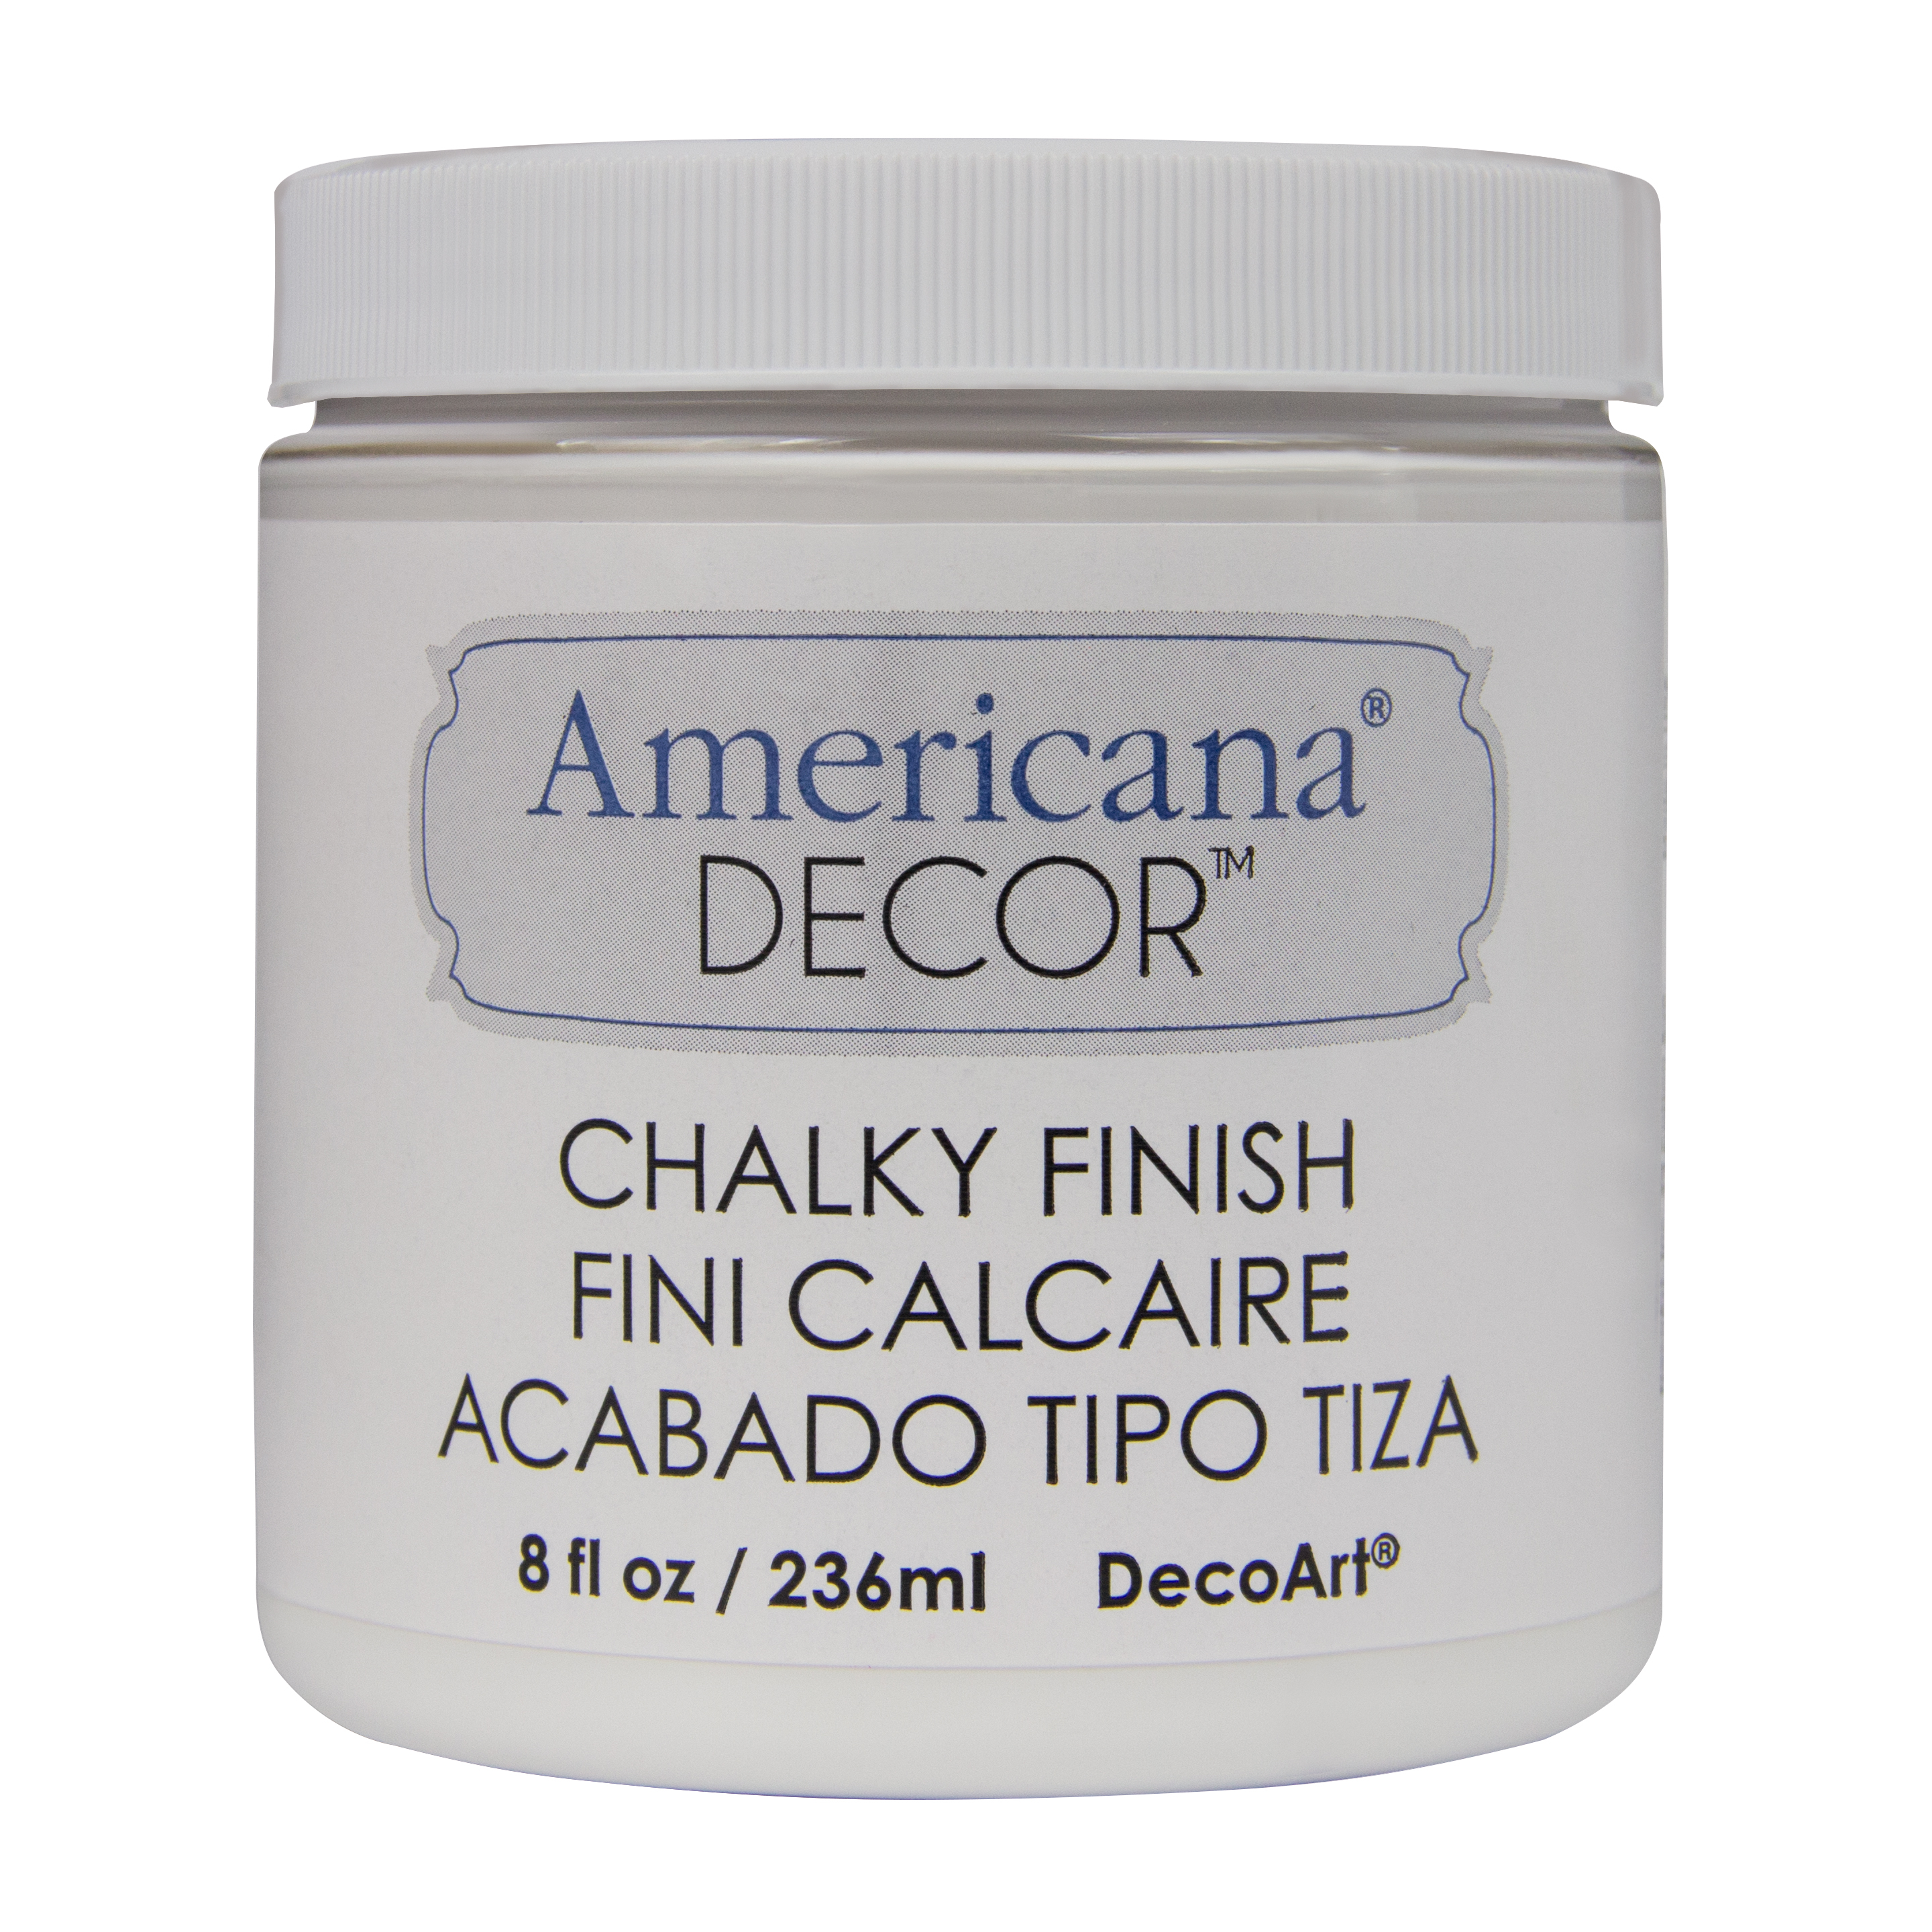 EVERLASTING CHALKY FINISH 236ml AMERICANA DECOR